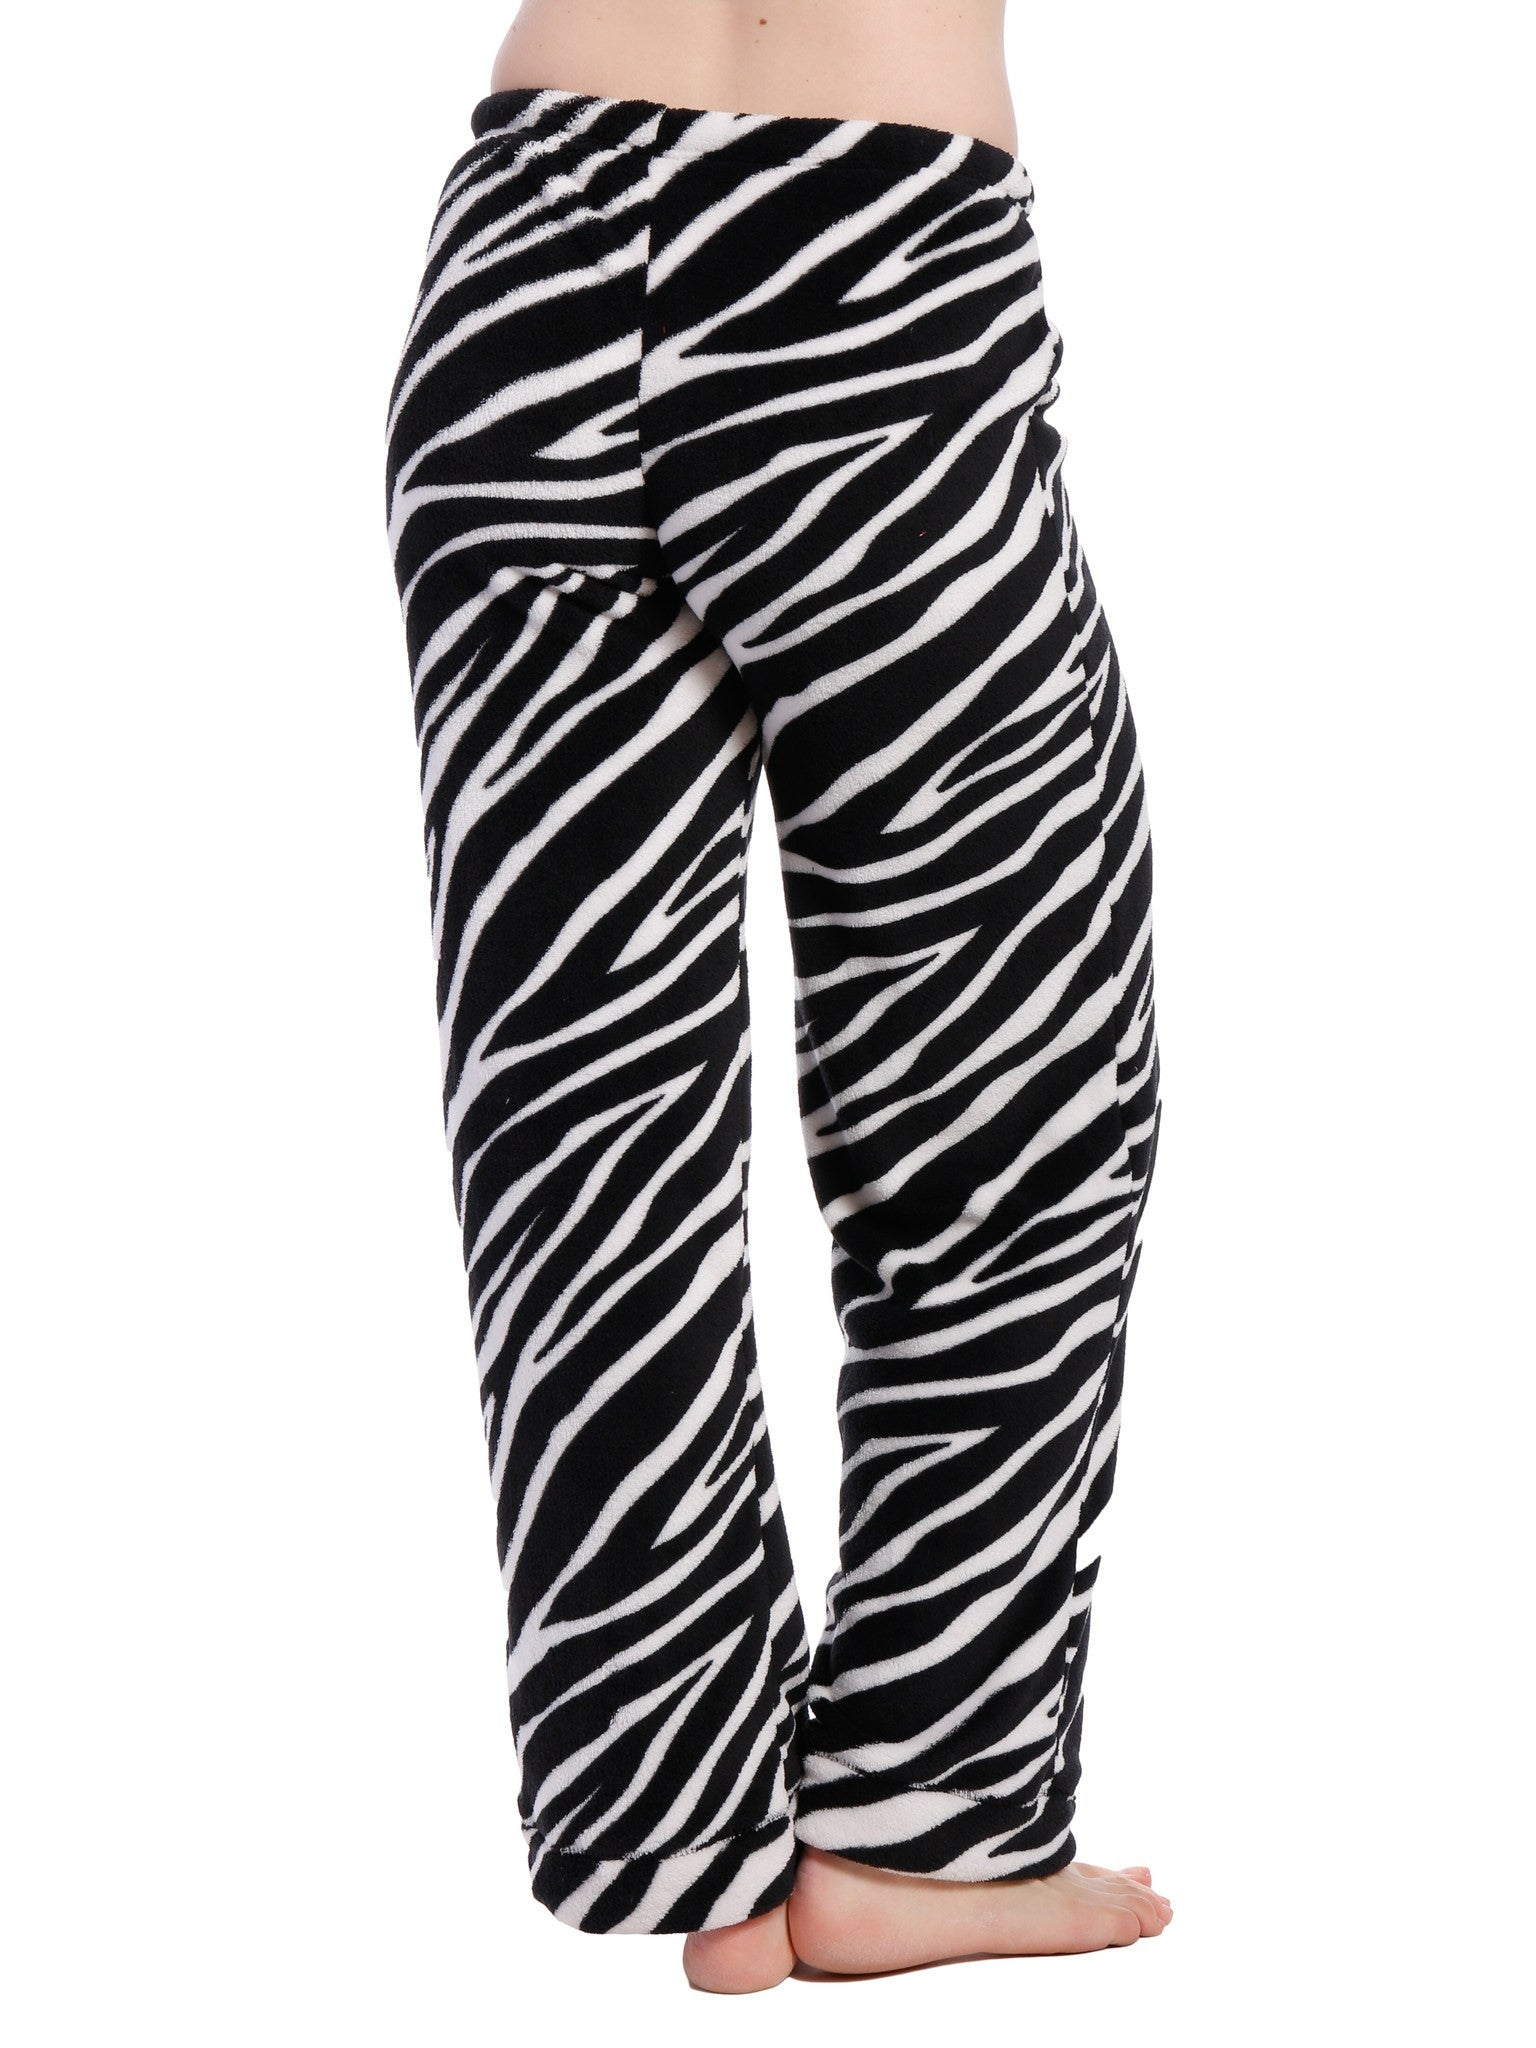 Zebra - Black/White